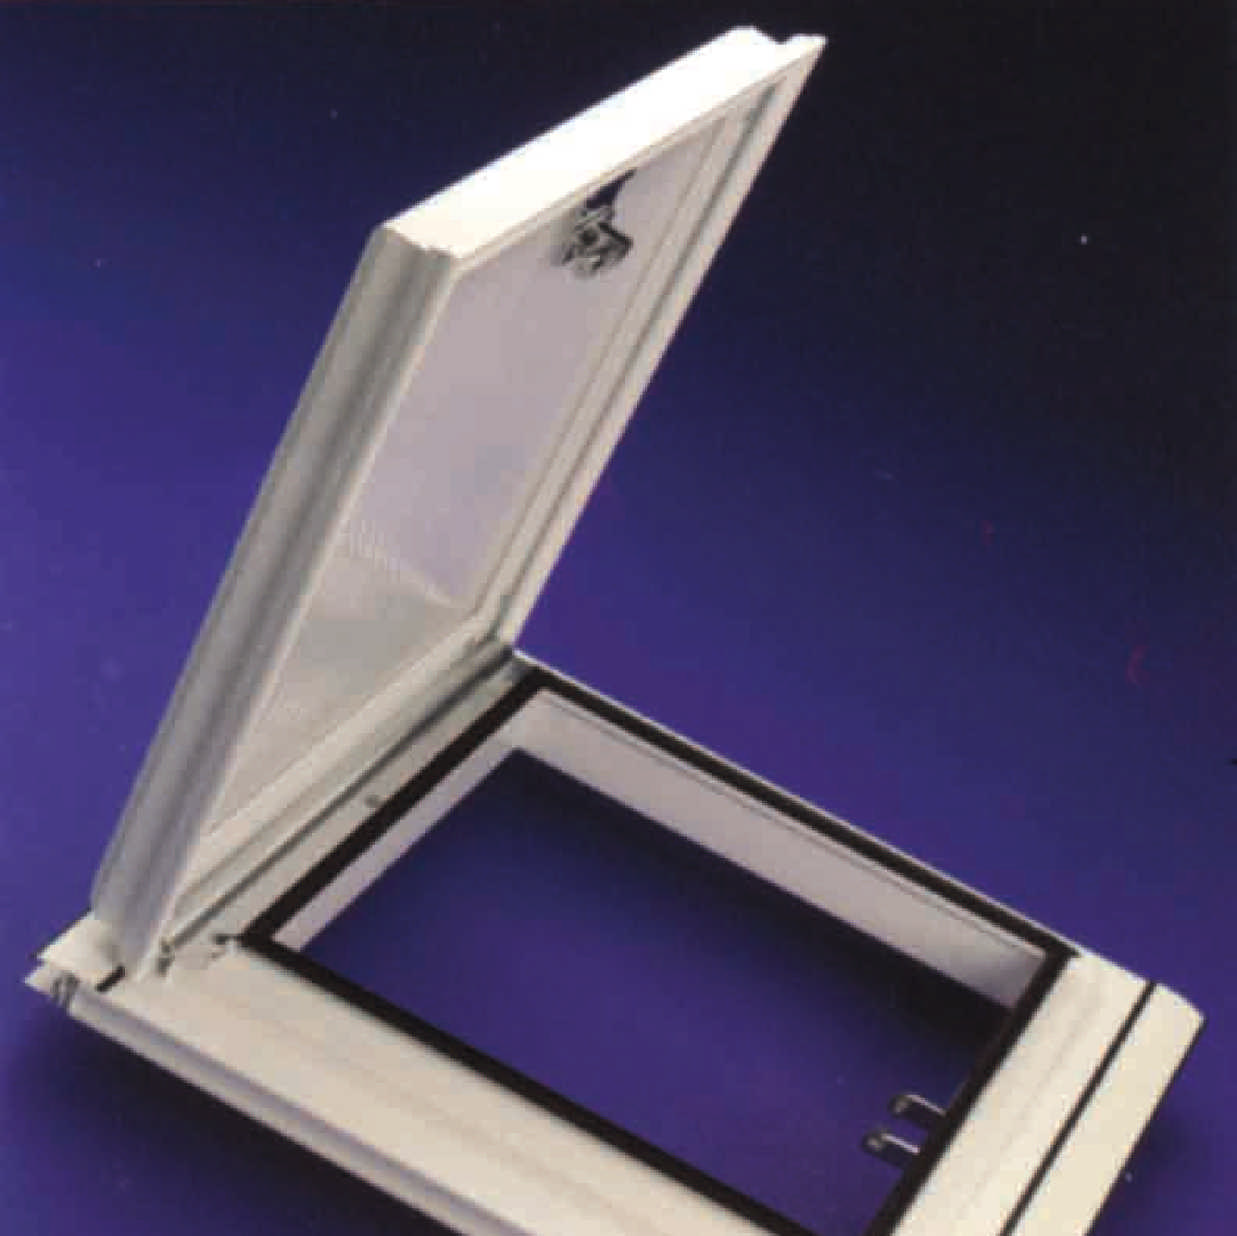 Buy Aluminium/uPVC Conservatory Roof Vent (Bar-to-Bar) for 35mm thick polycarbonate online today